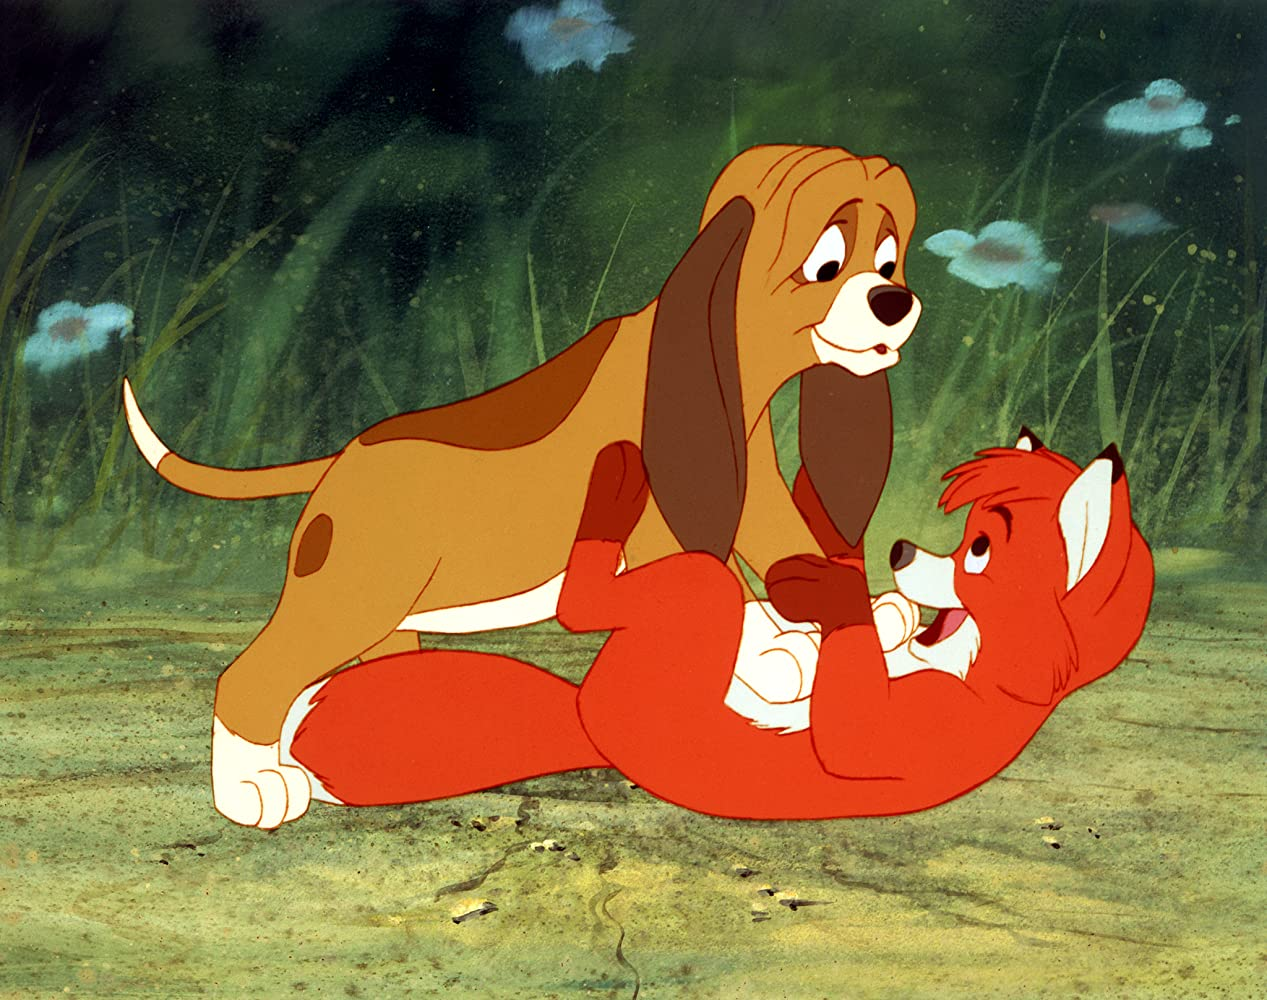 Corey Feldman and Keith Coogan in The Fox and the Hound (1981) Disney Studios